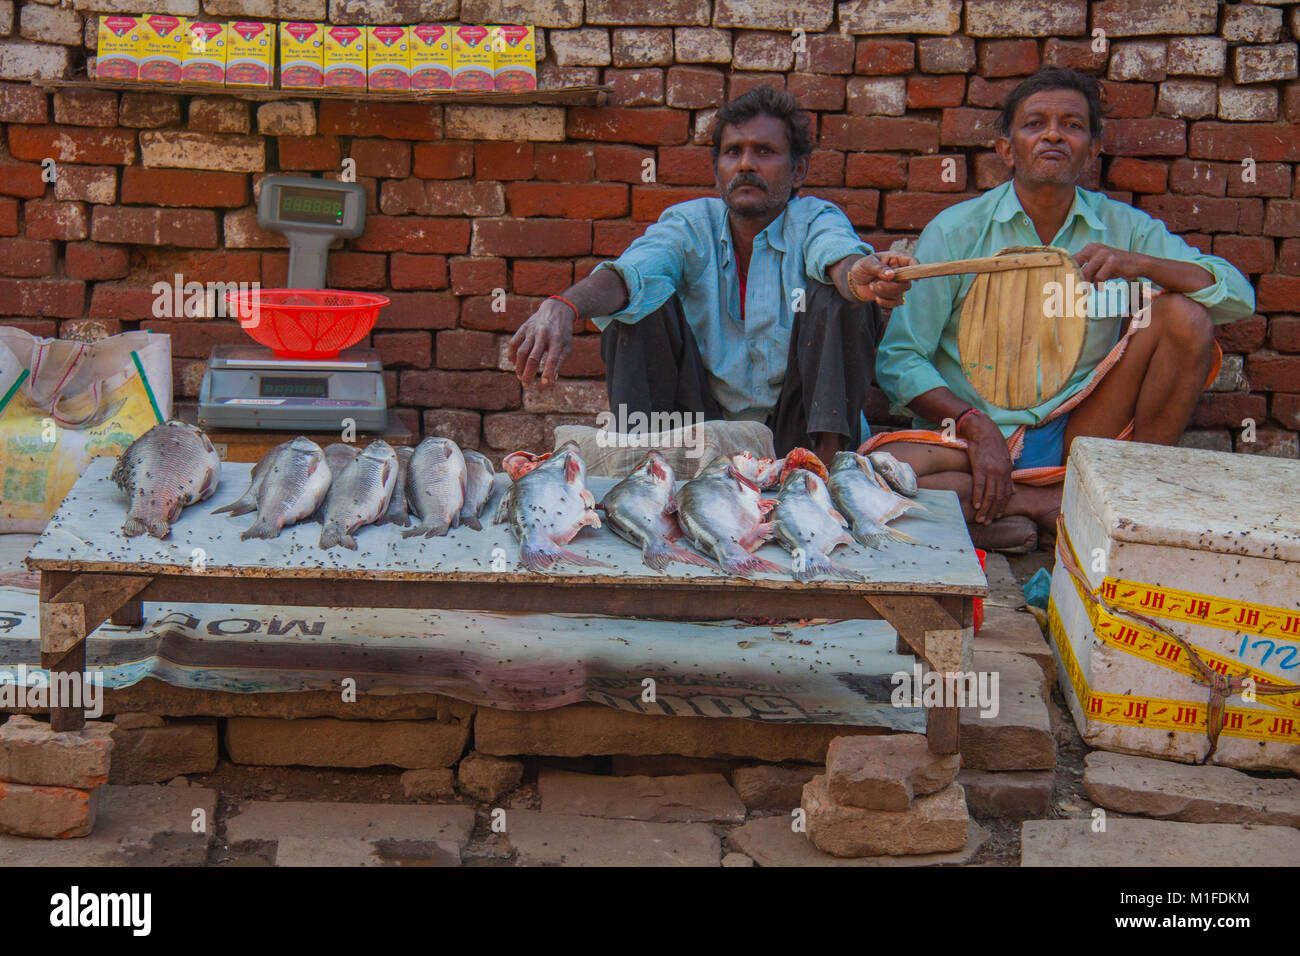 Street vendors fanning away flies from the fish they are selling on the street in Varanasi, Uttah Pradesh, India - Stock Image